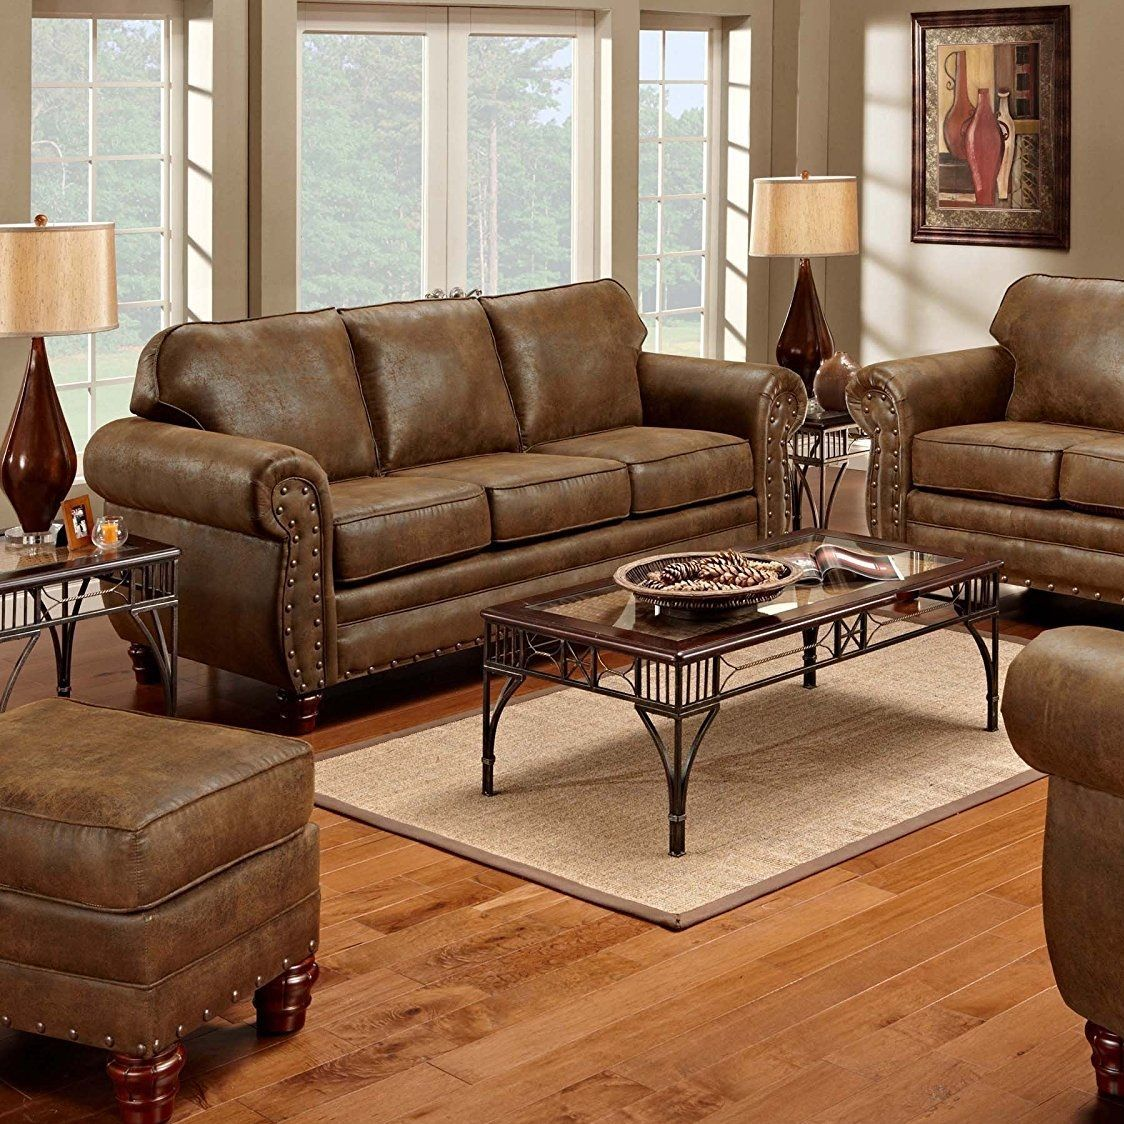 Best Farmhouse Sofas! See 100+ TopRated Rustic Sofas and